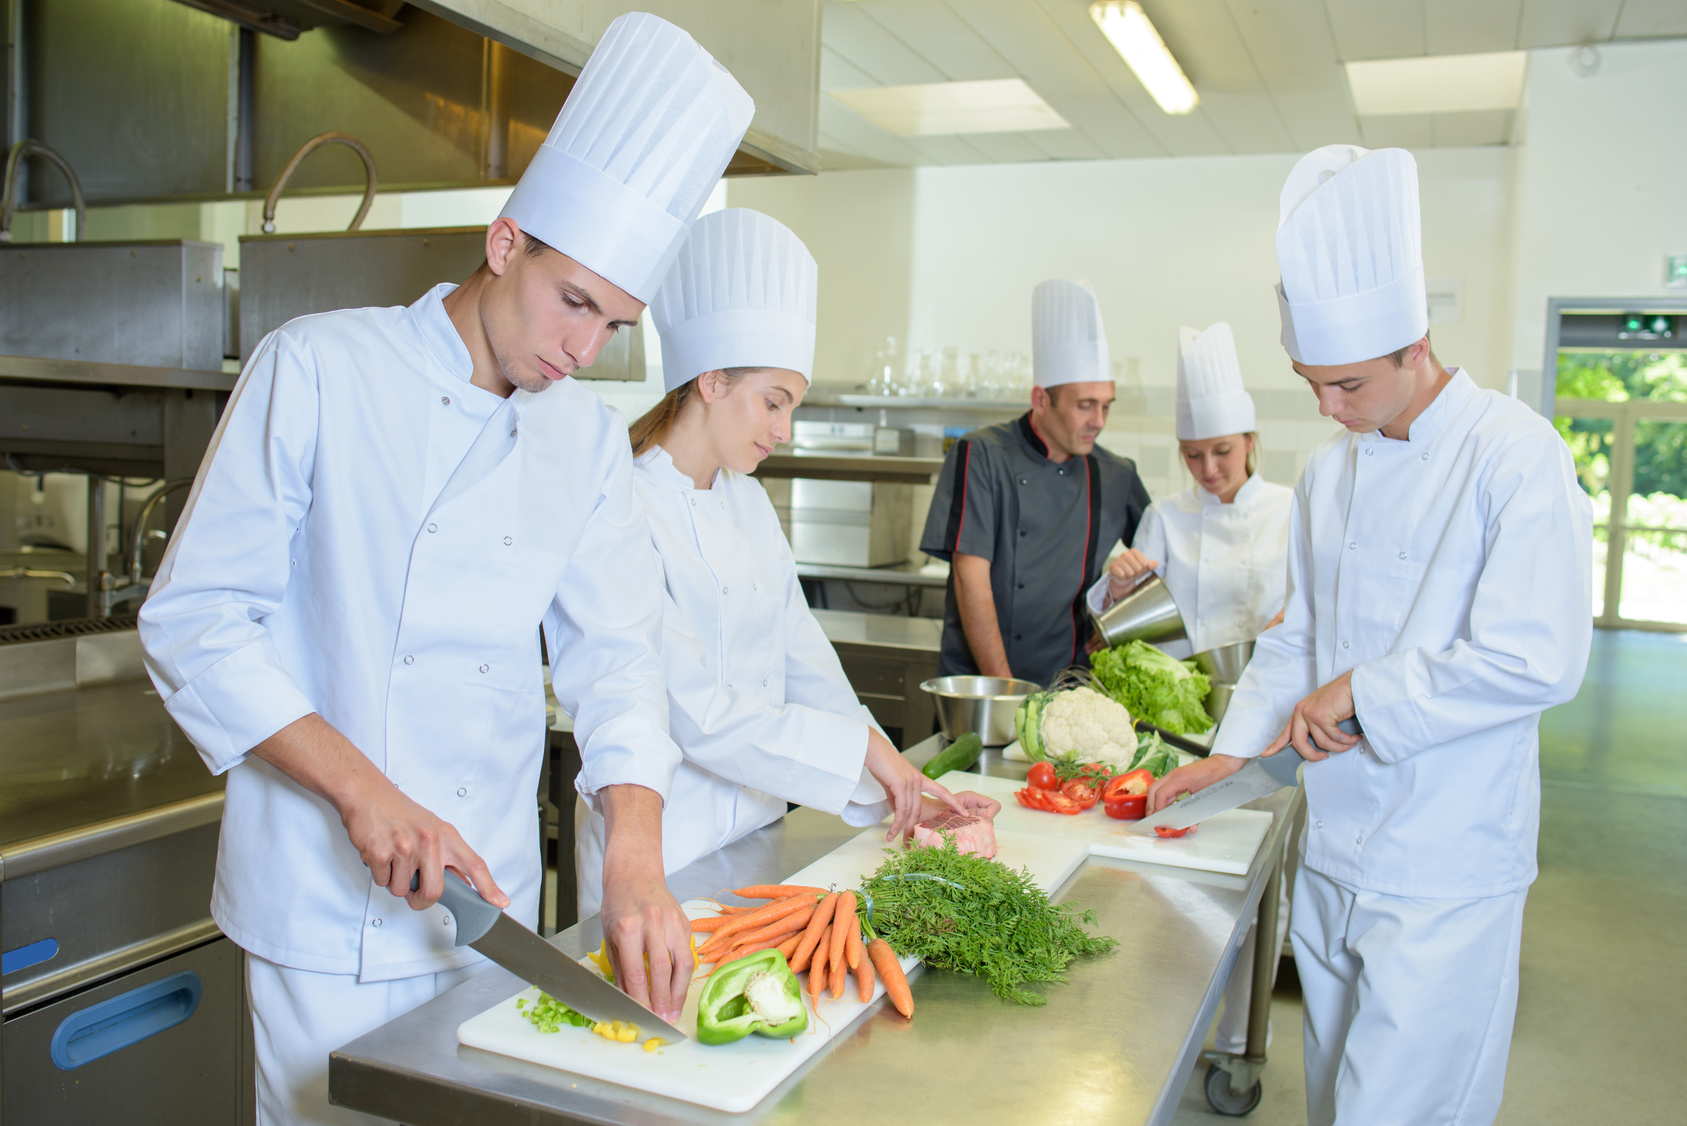 Chef supervising team of trainees